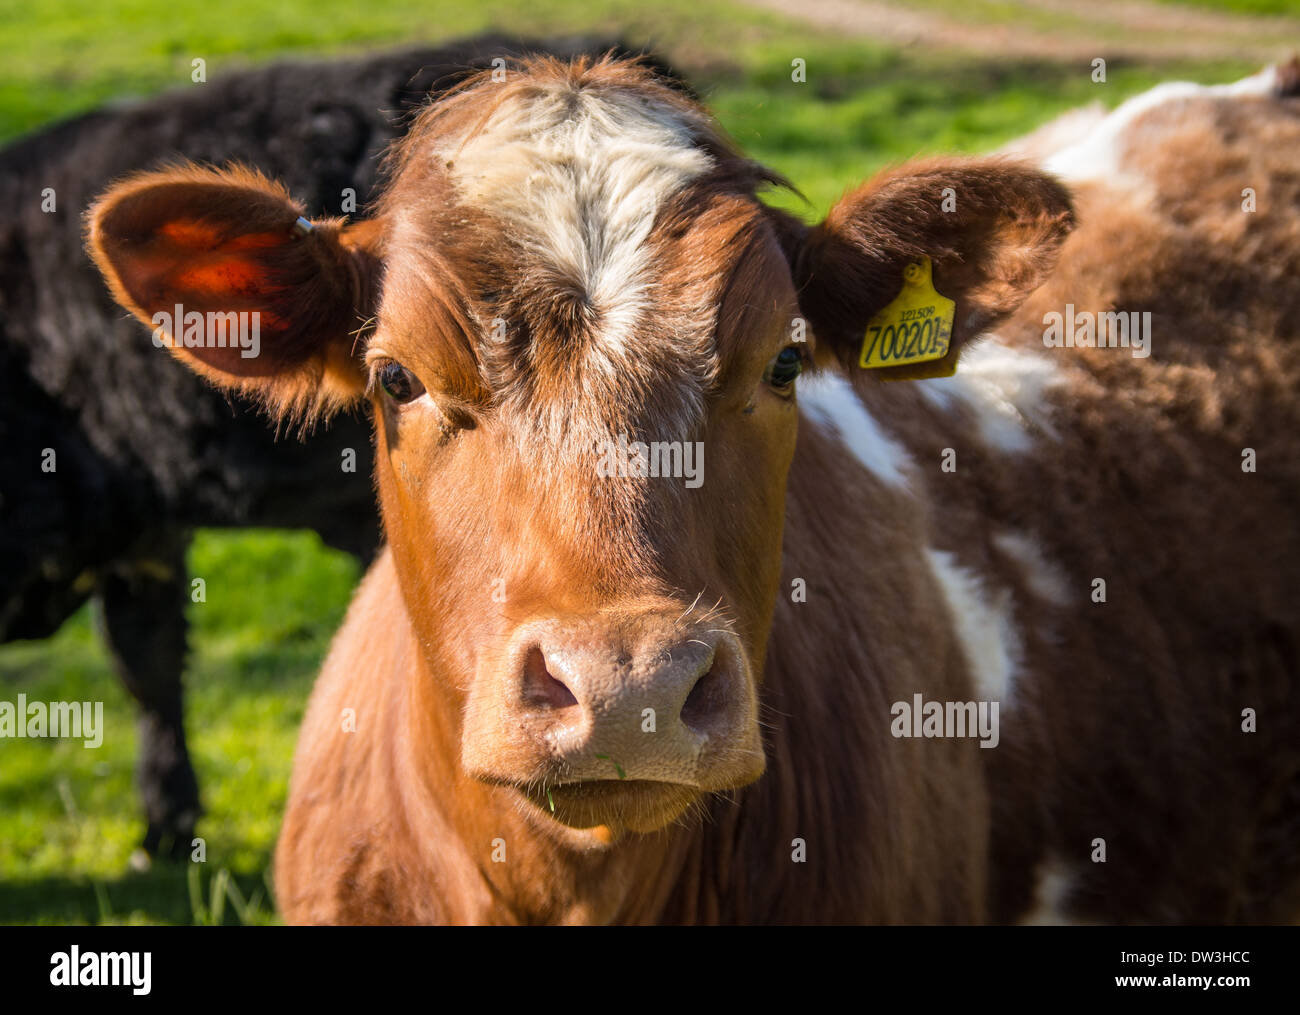 Portrait of a brown Friesian cow in a North Yorkshire field. Stock Photo